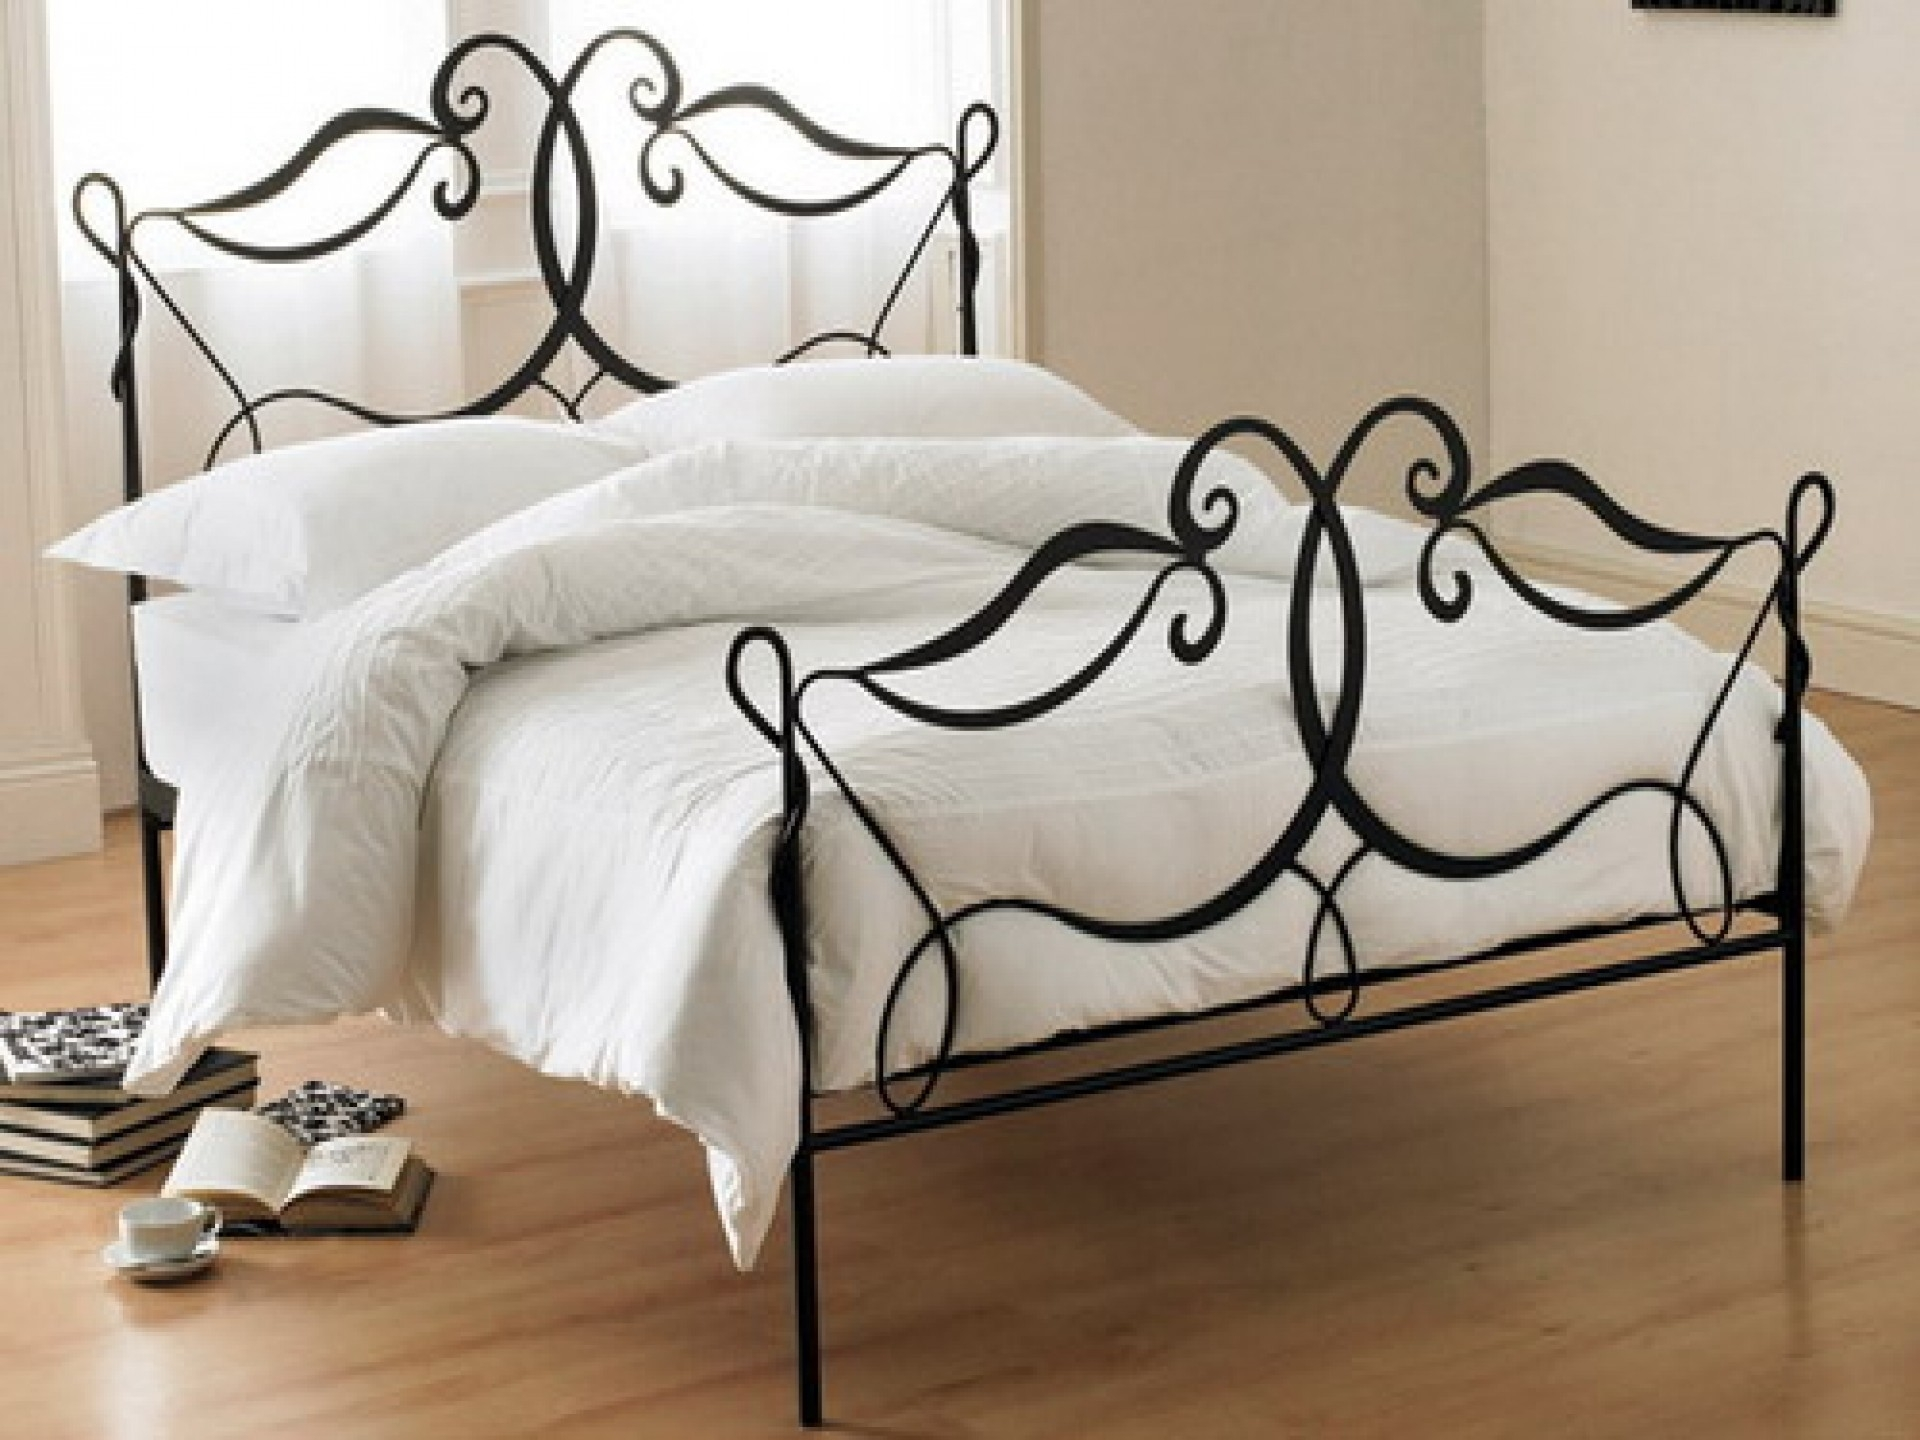 Wrought iron headboard full size